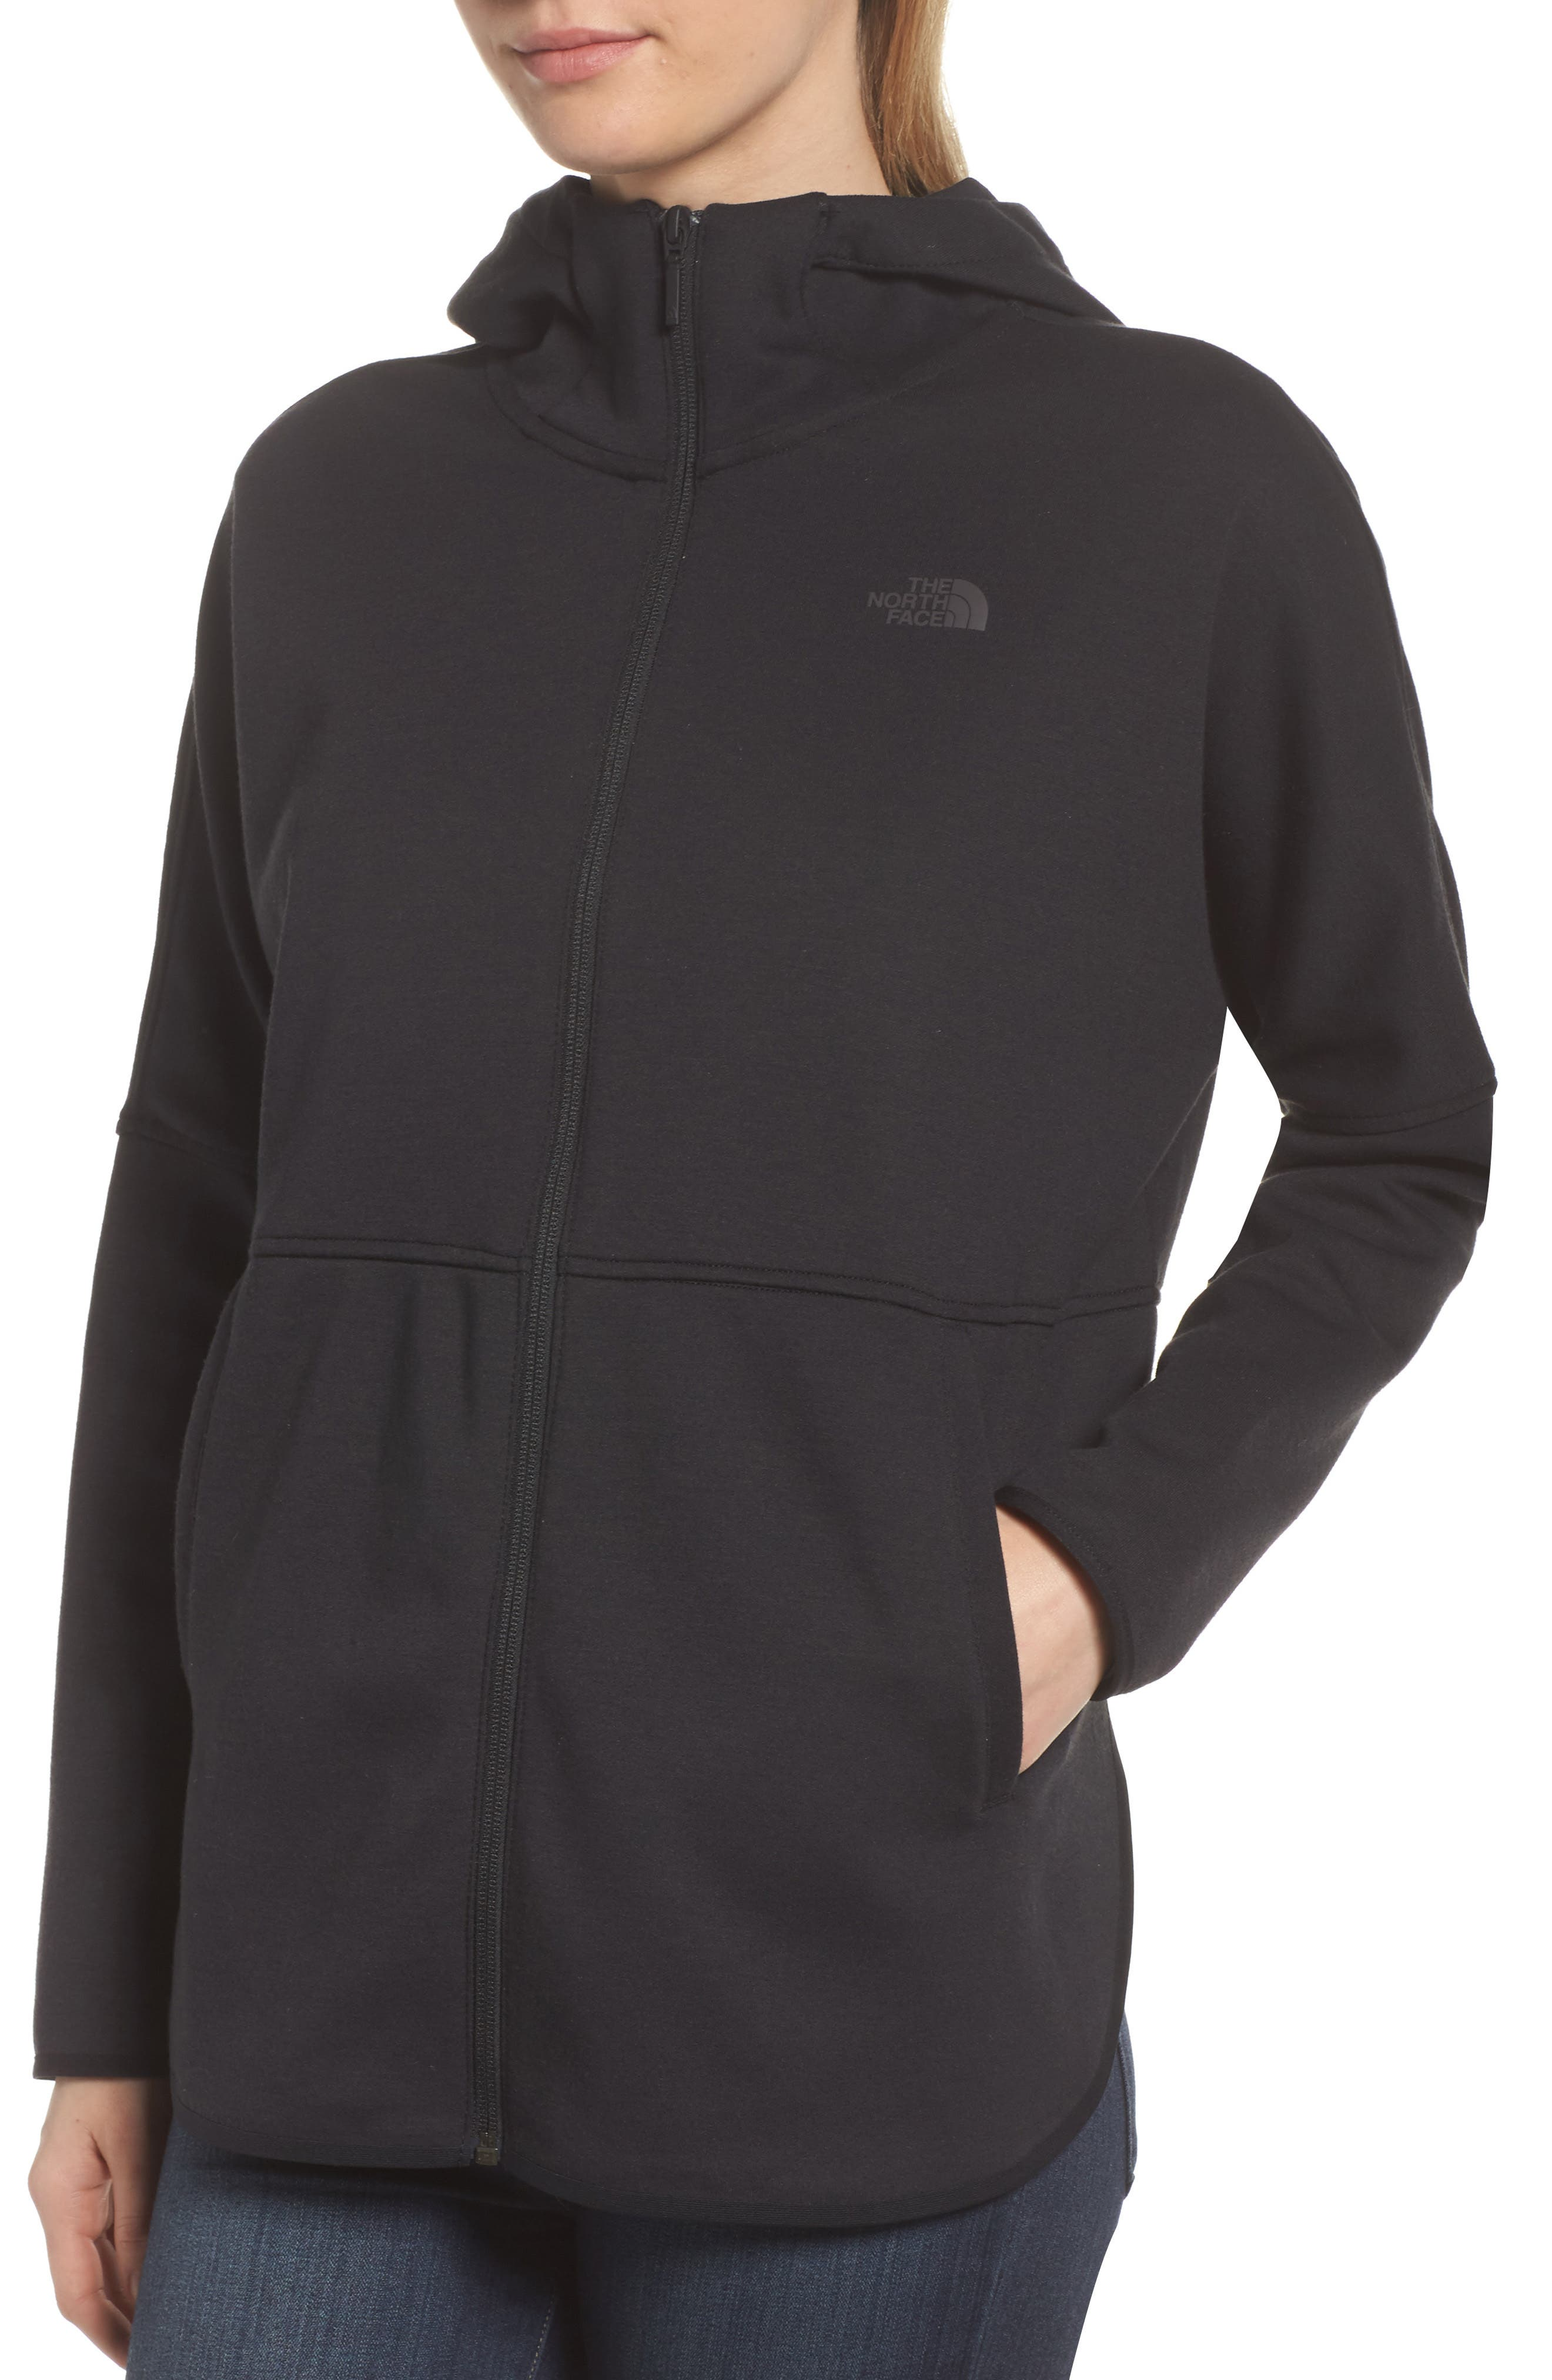 THE NORTH FACE,                             Slacker Hooded Jacket,                             Alternate thumbnail 4, color,                             001